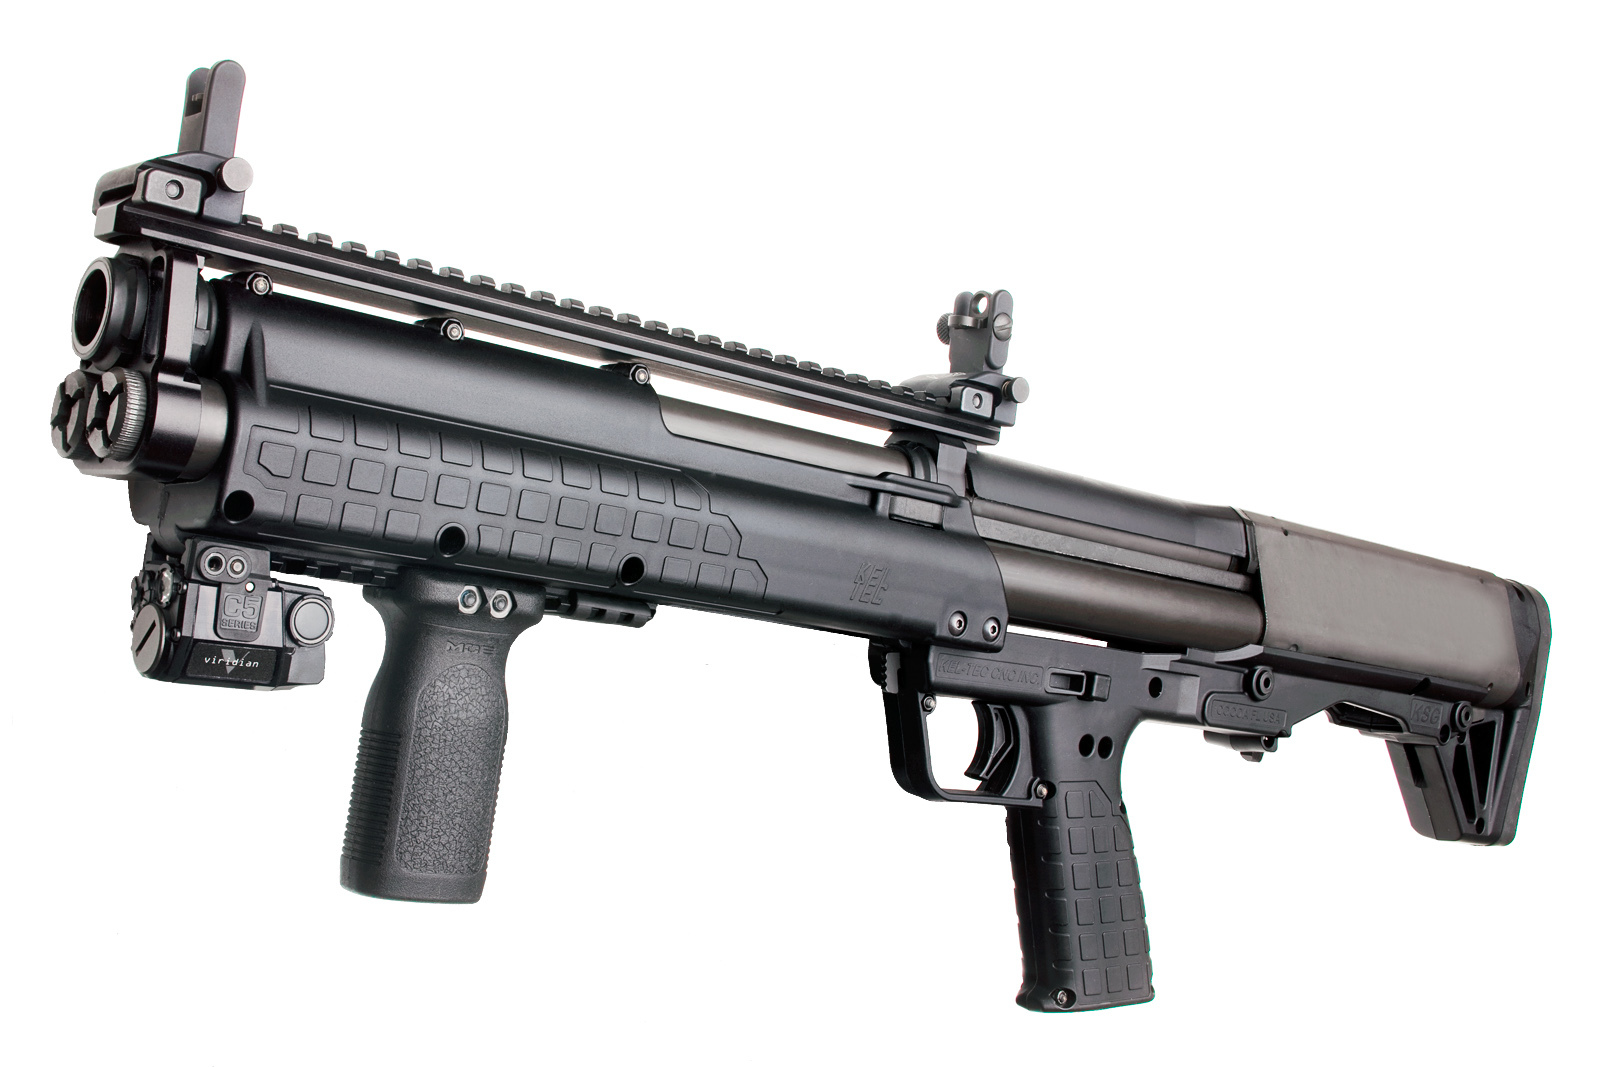 Kel Tec KSG Shotgun Oleg Volk 1 <!  :en  >Kel Tec KSG Shotgun: 15 Round (14+1) Bullpup Pump Action 12 Gauge Combat Shotgun for Urban Tactical Operations and Applications (Photos and Video!)<!  :  >